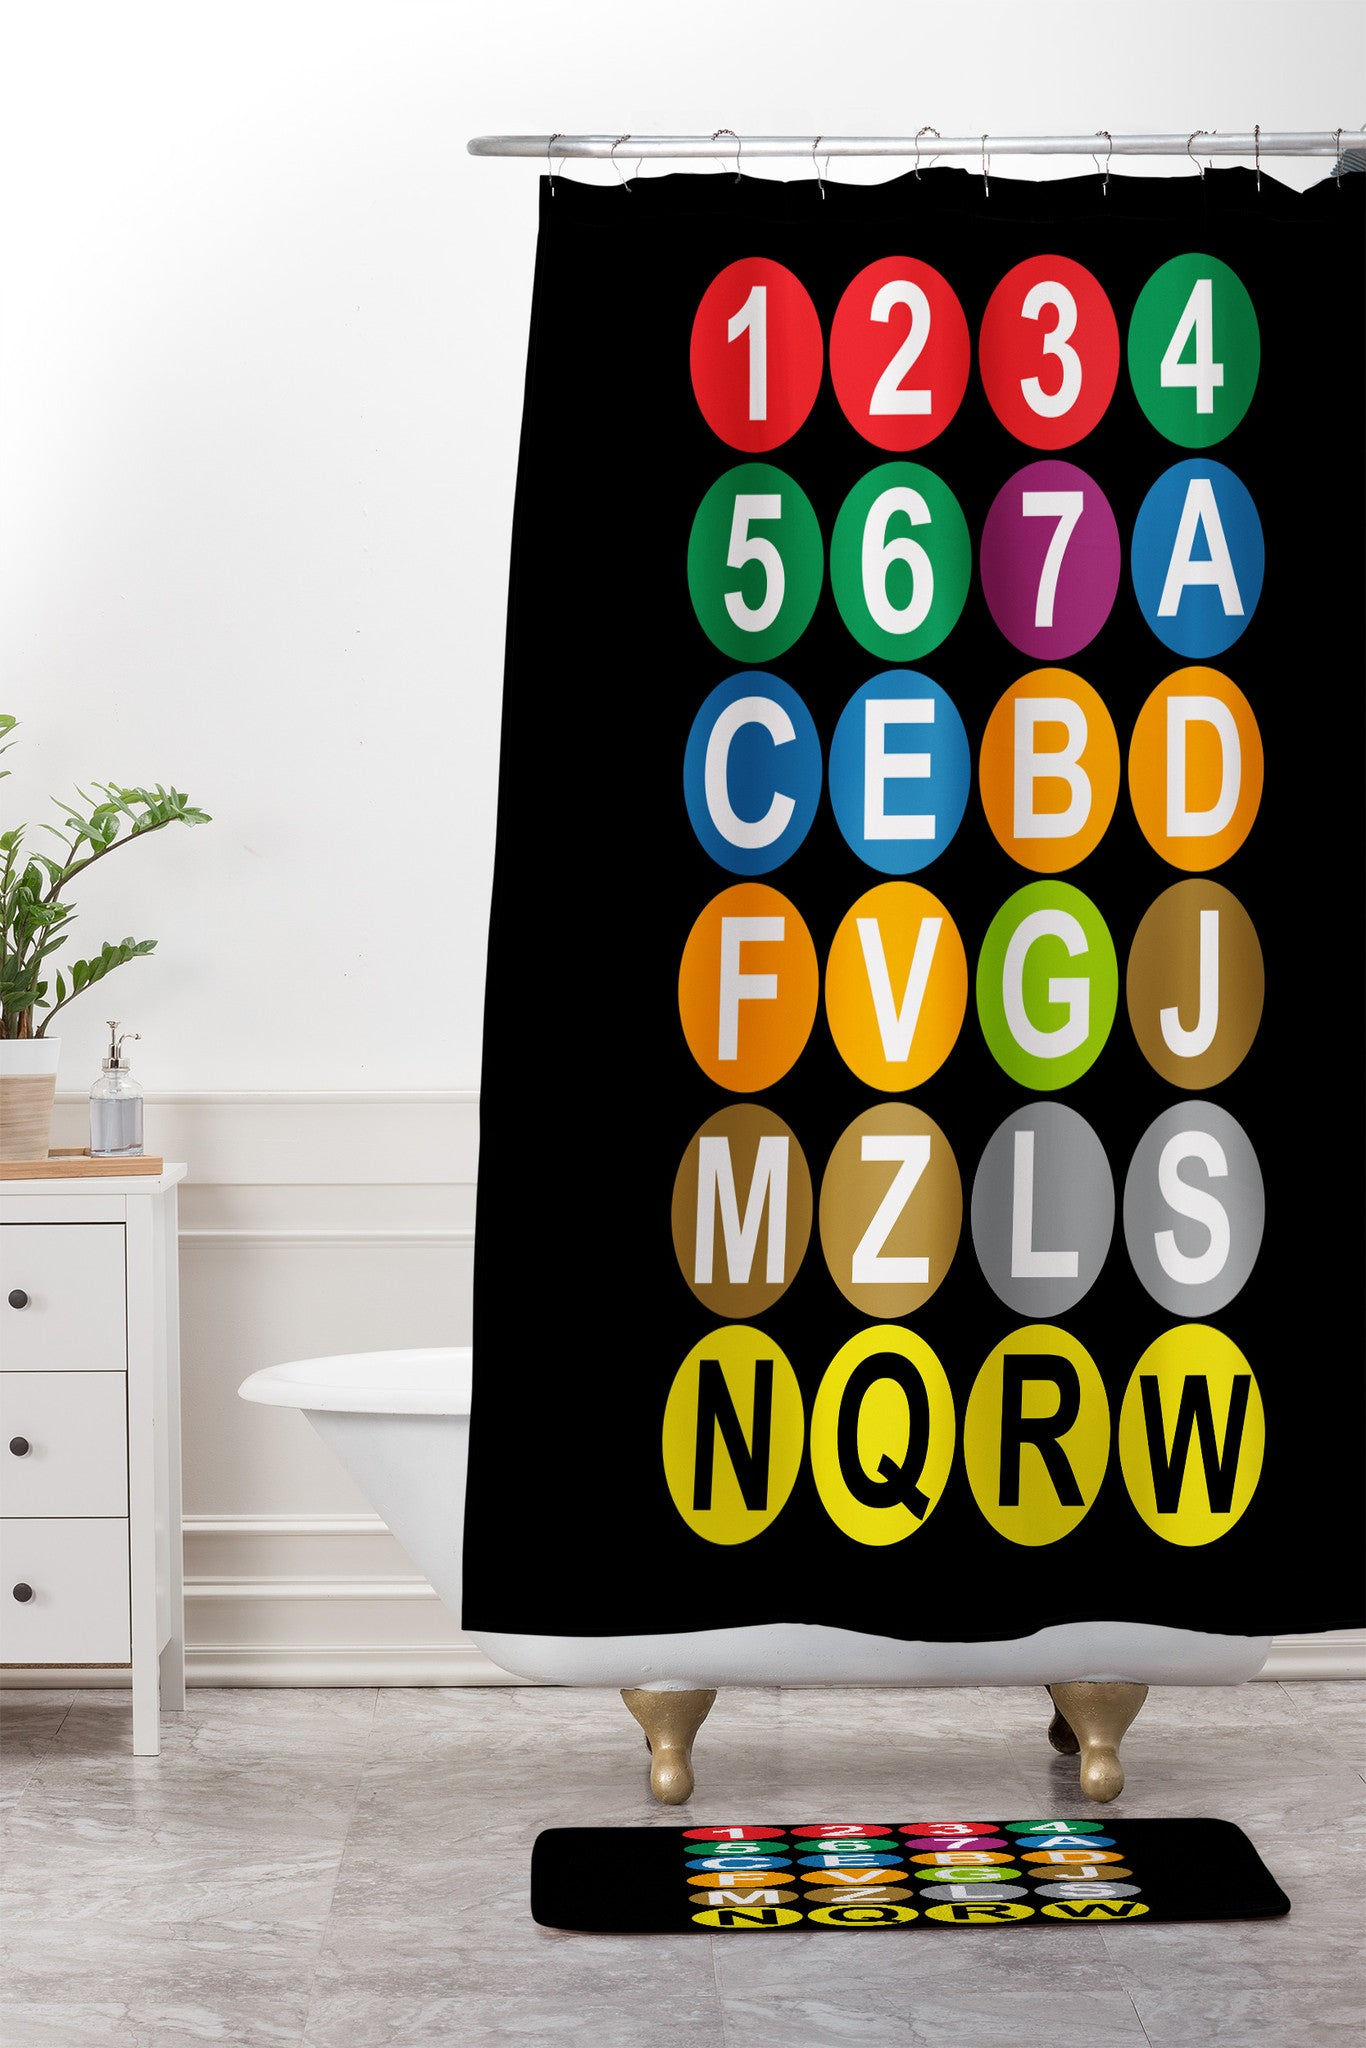 Restudio Designs Nyc Subway Shower Curtain And Mat